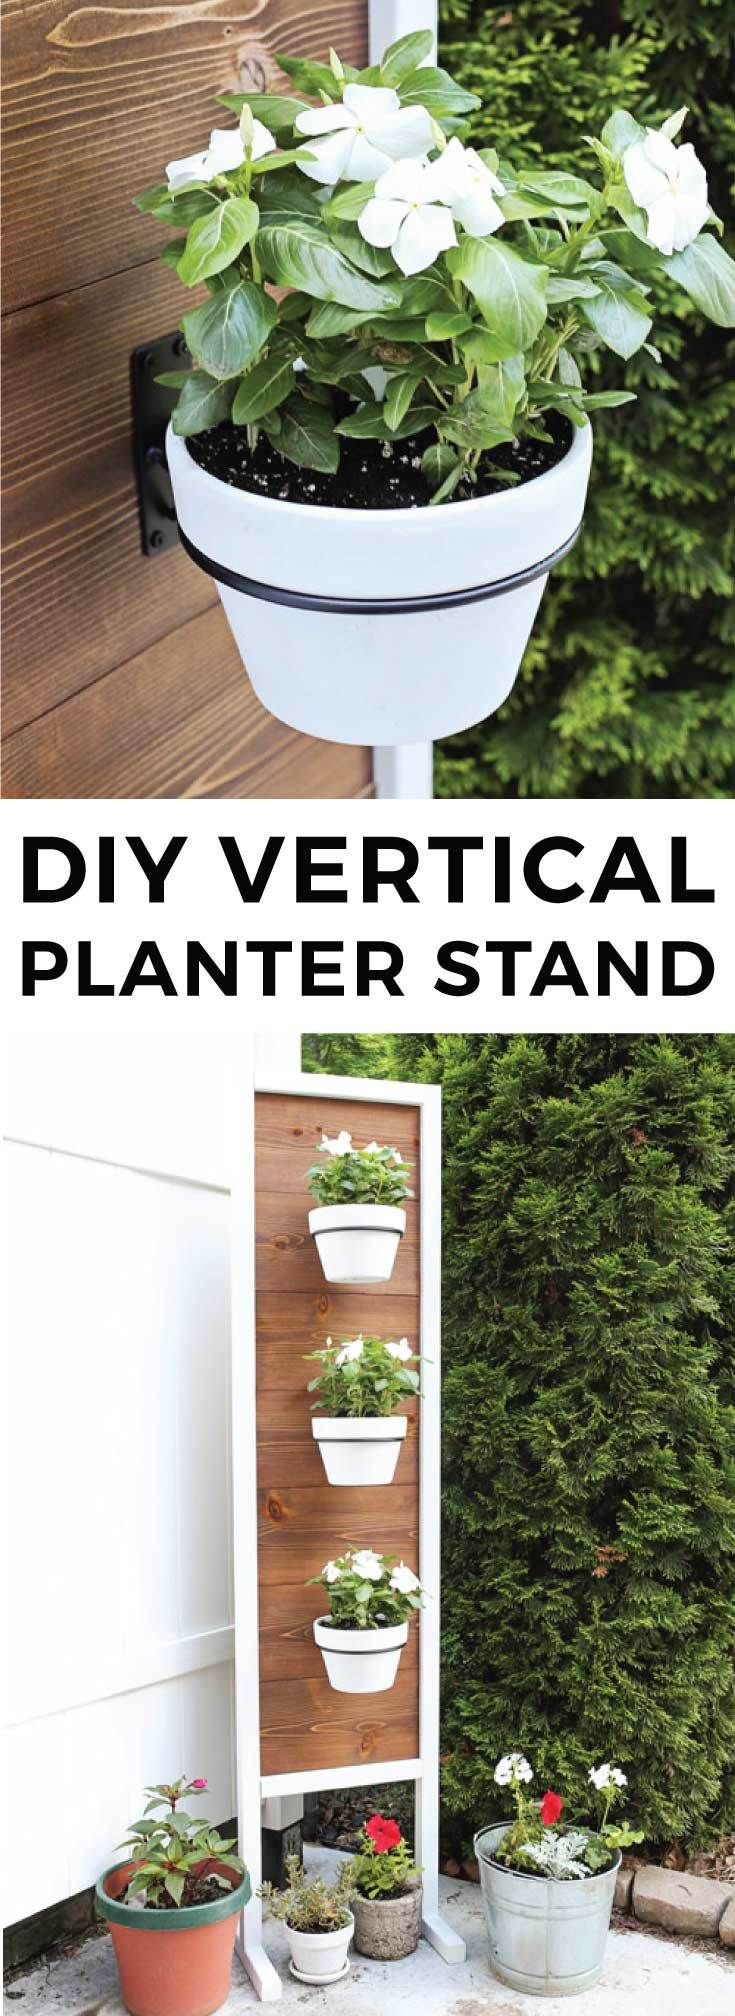 How to build a DIY vertical planter stand. Pretty backyard decor idea for a vertical garden or herb garden. This wooden planter provides backyard privacy as a fence alternative.